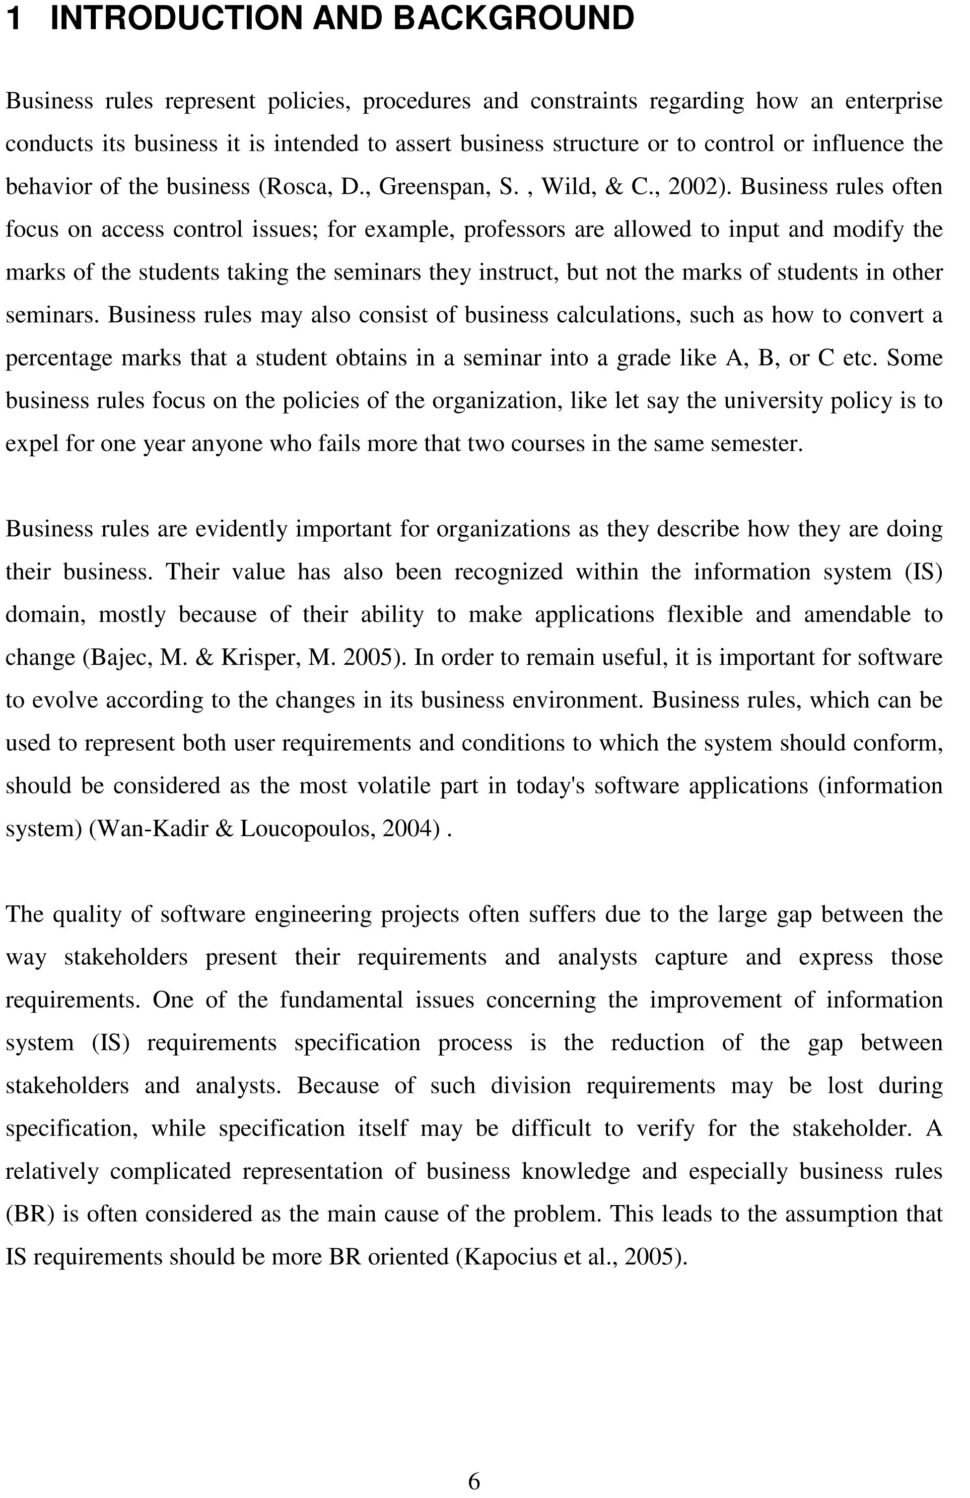 Large Size of Abortion Persuasive Essay Introduction